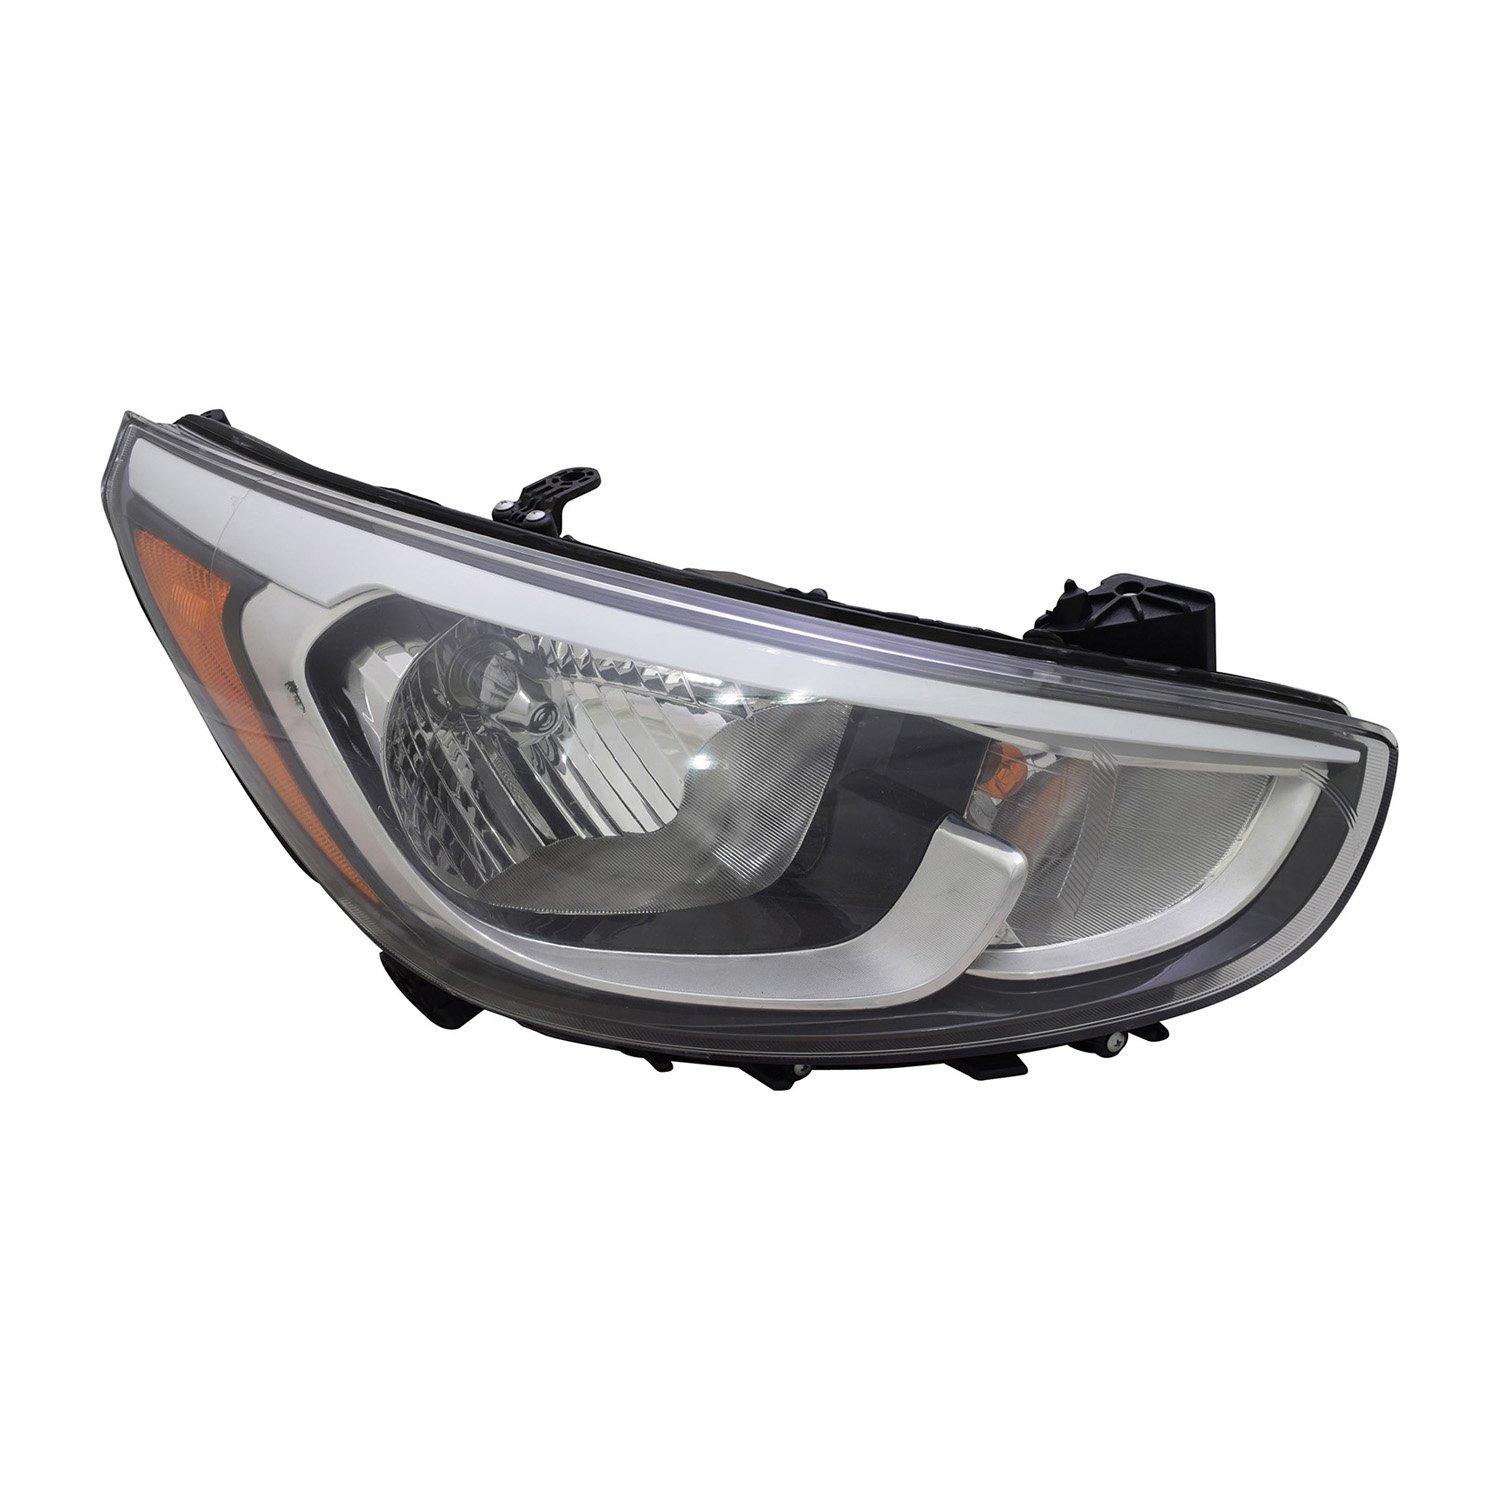 Partslink Number HY2503192 Multiple Manufacturers HY2503192R OE Replacement HYUNDAI ACCENT/_HATCHBACK Headlight Assembly